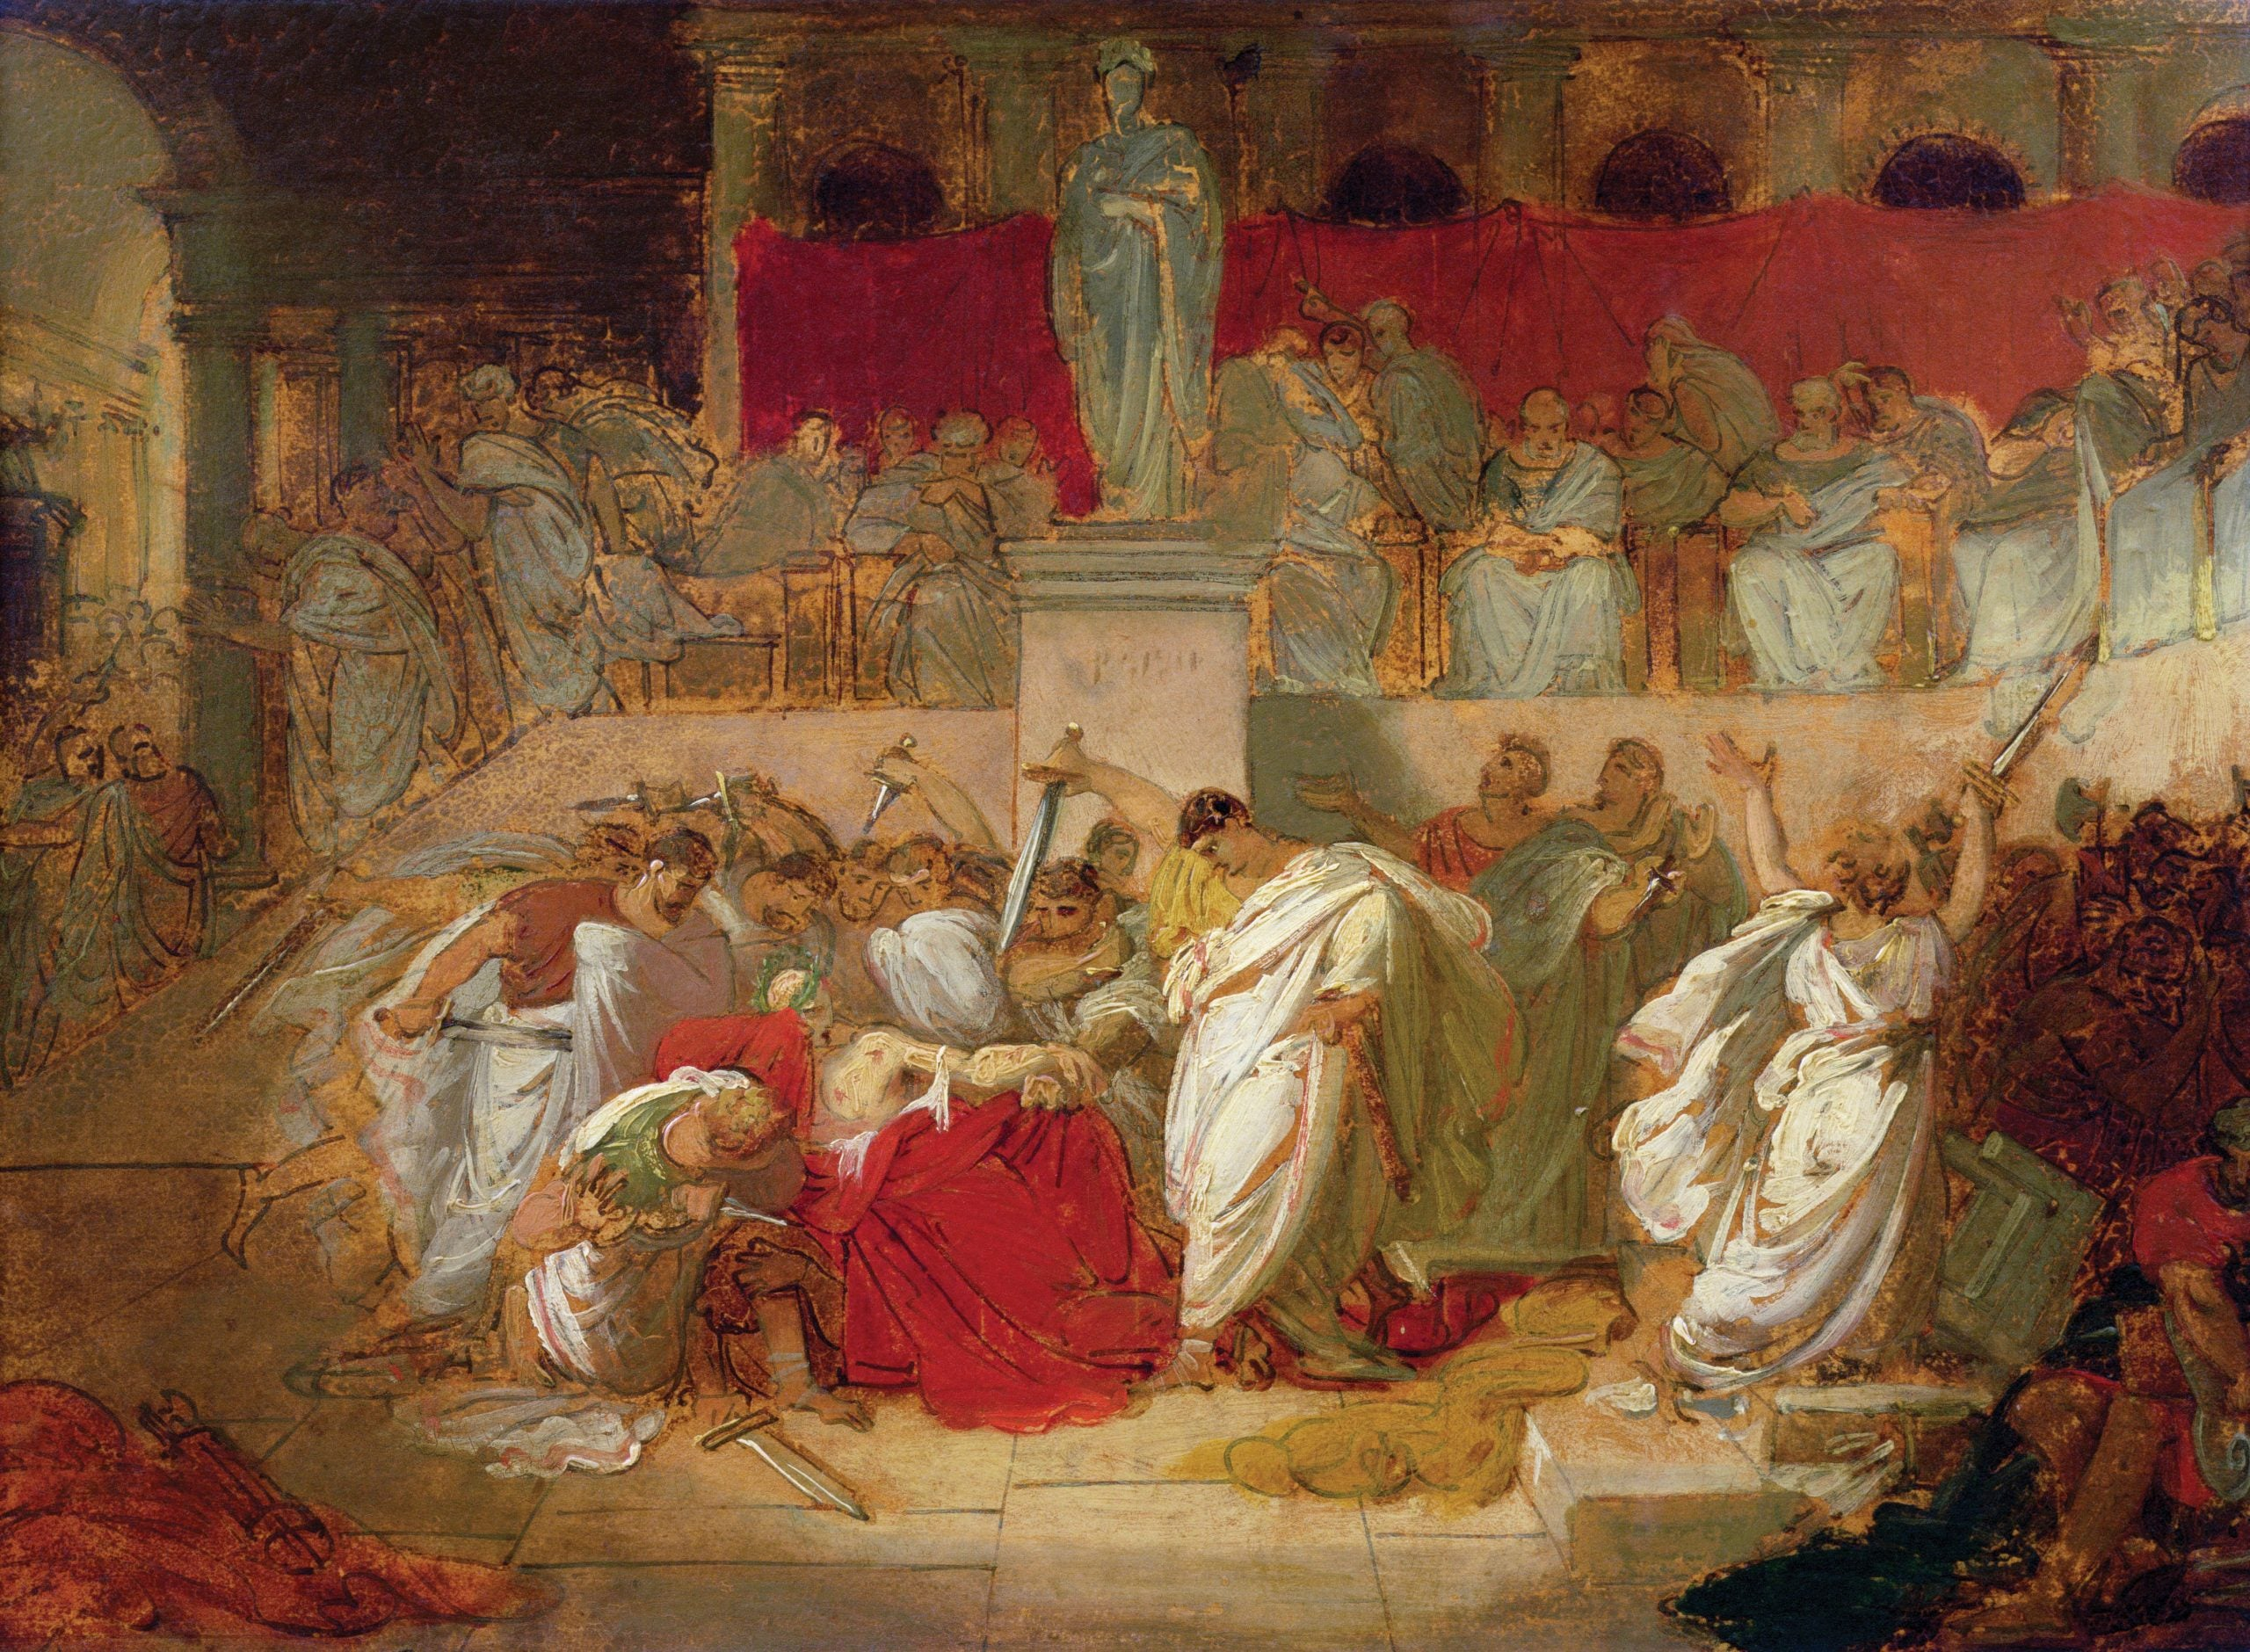 The gangsters of Rome: the brutal side of the ancient city